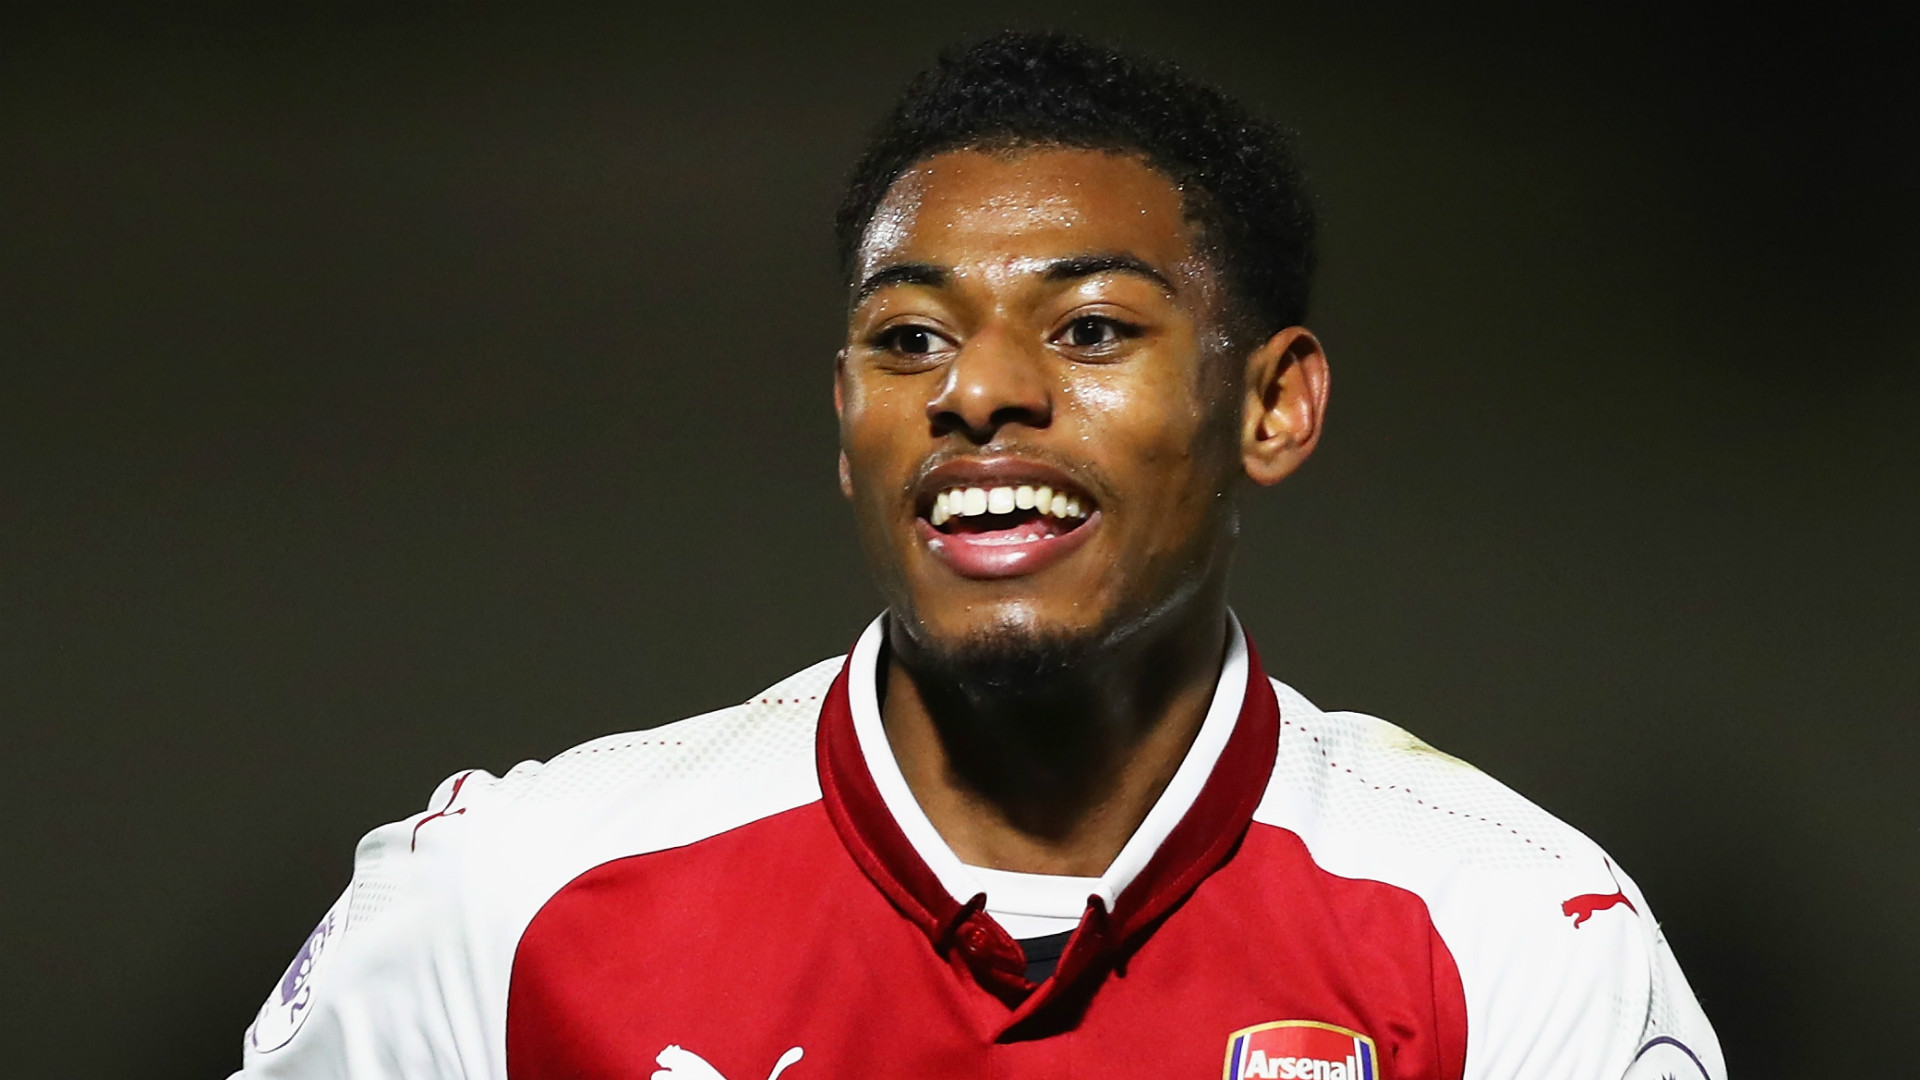 Leaving Arsenal was a good choice - Reine-Adelaide